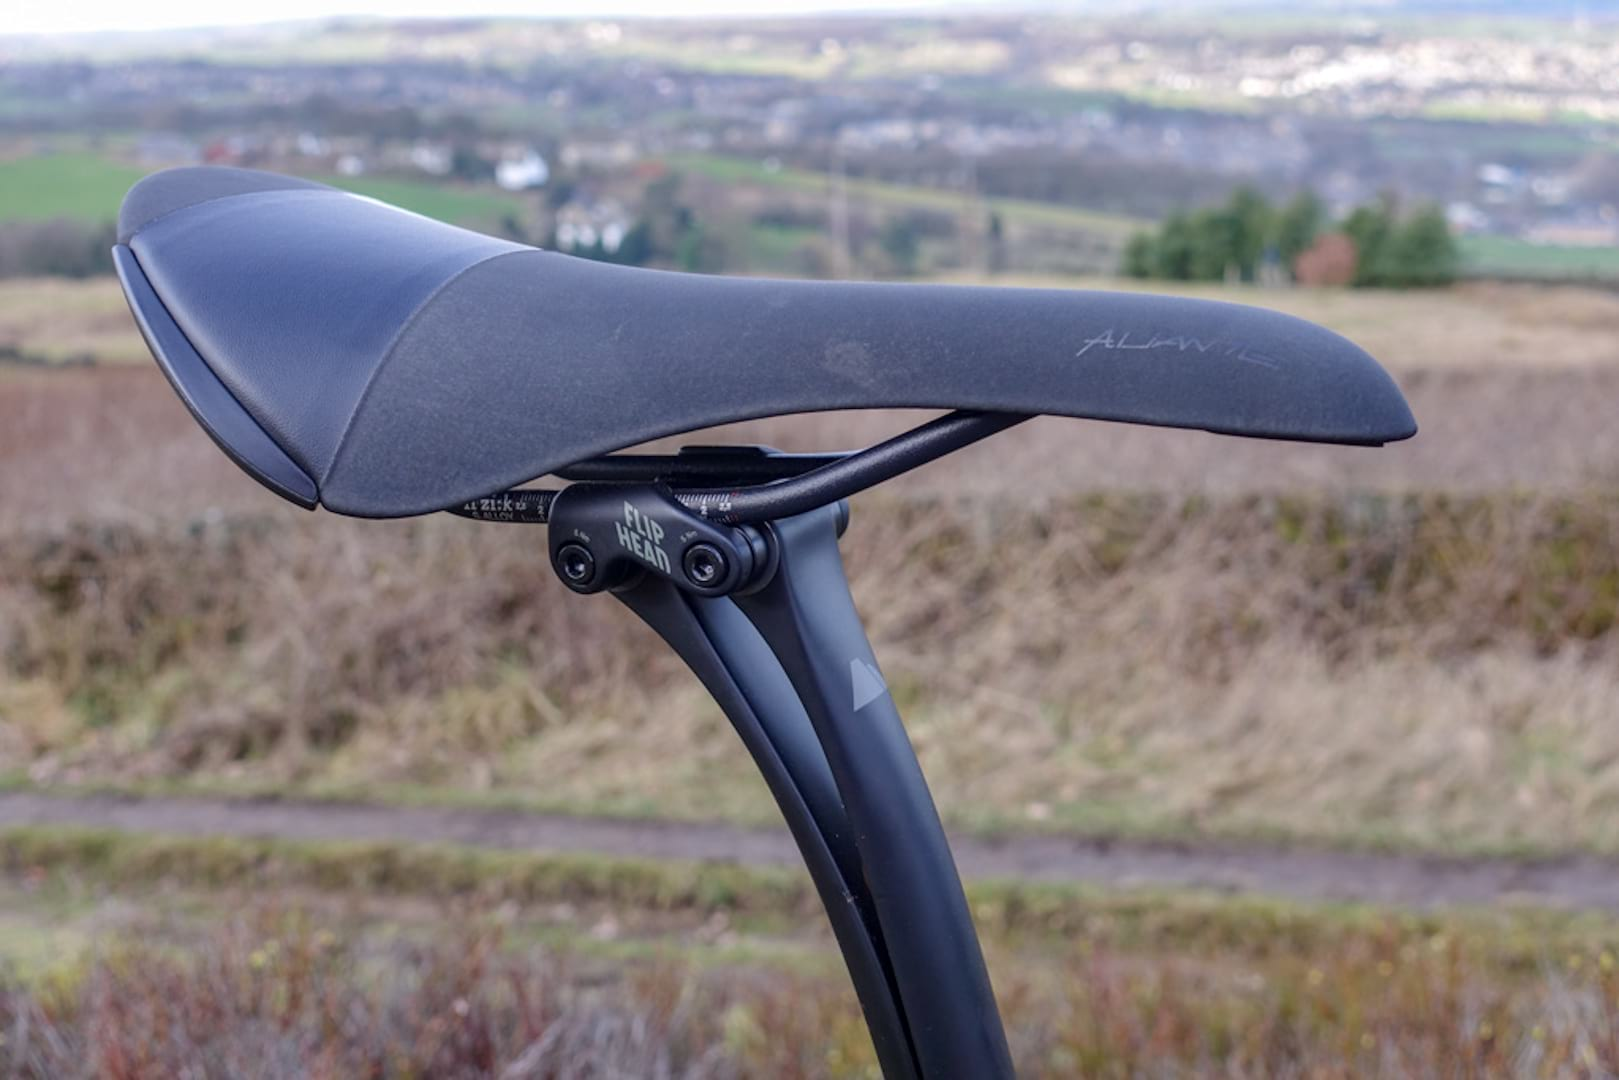 Review: Canyon's high-falutin' carbon gravel bike - the Holy